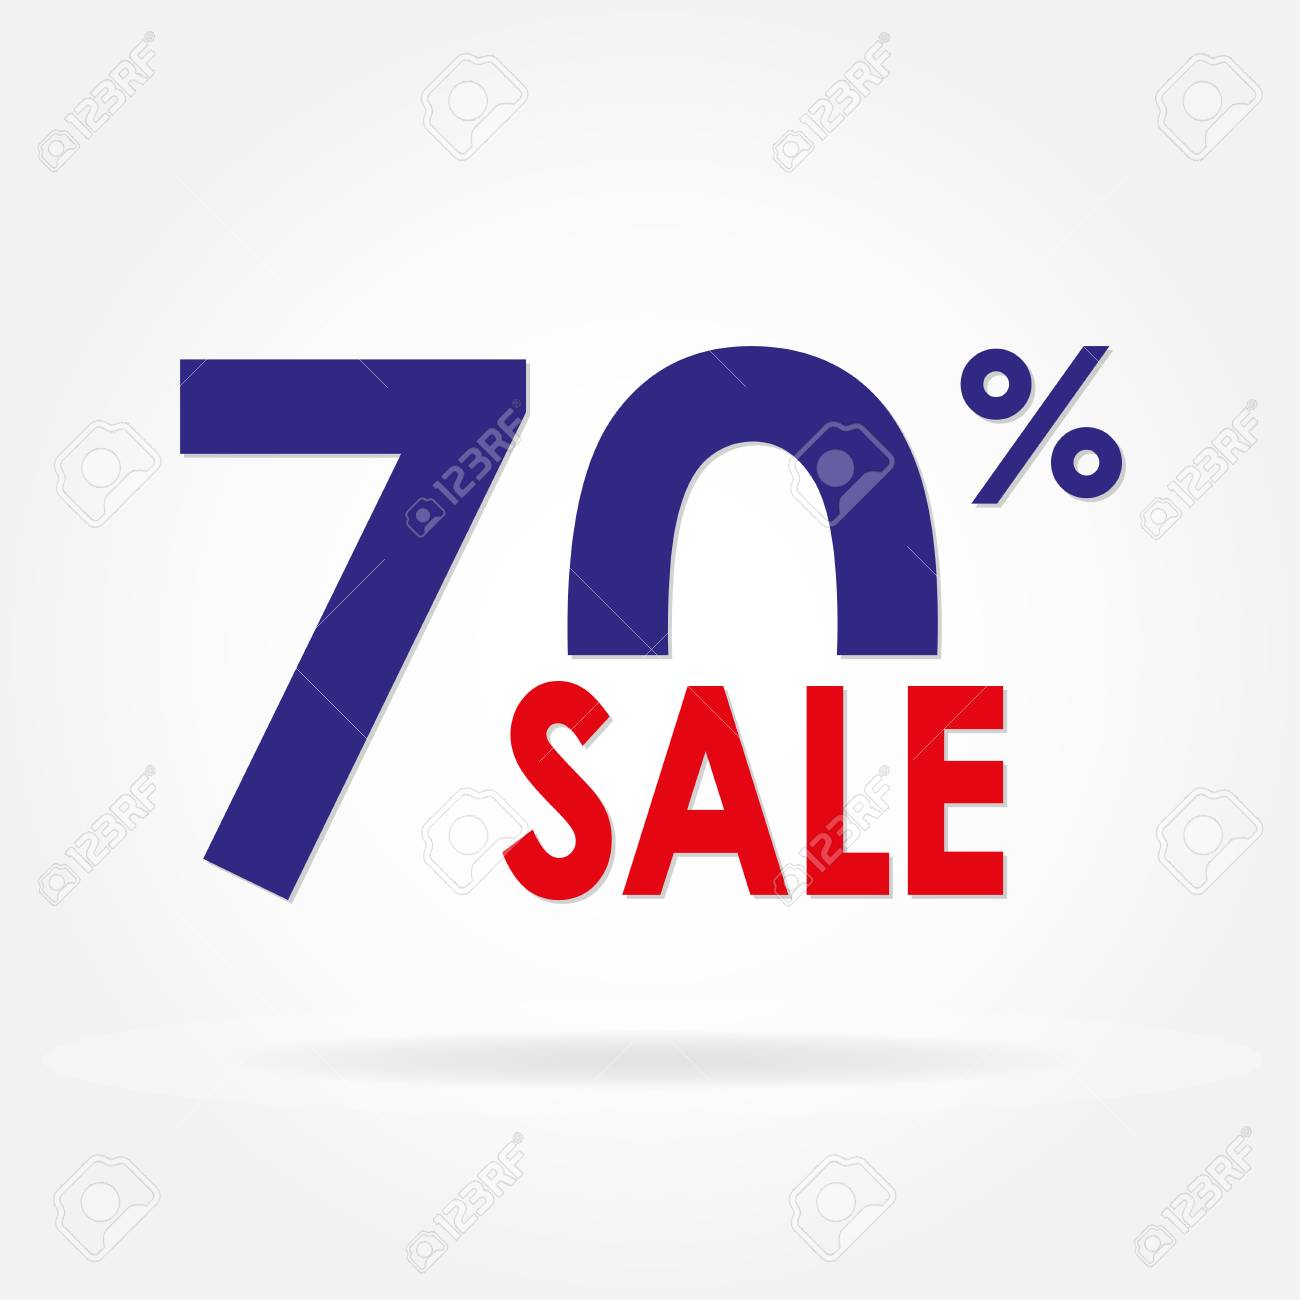 sale 70 and discount price sign or icon sales design template